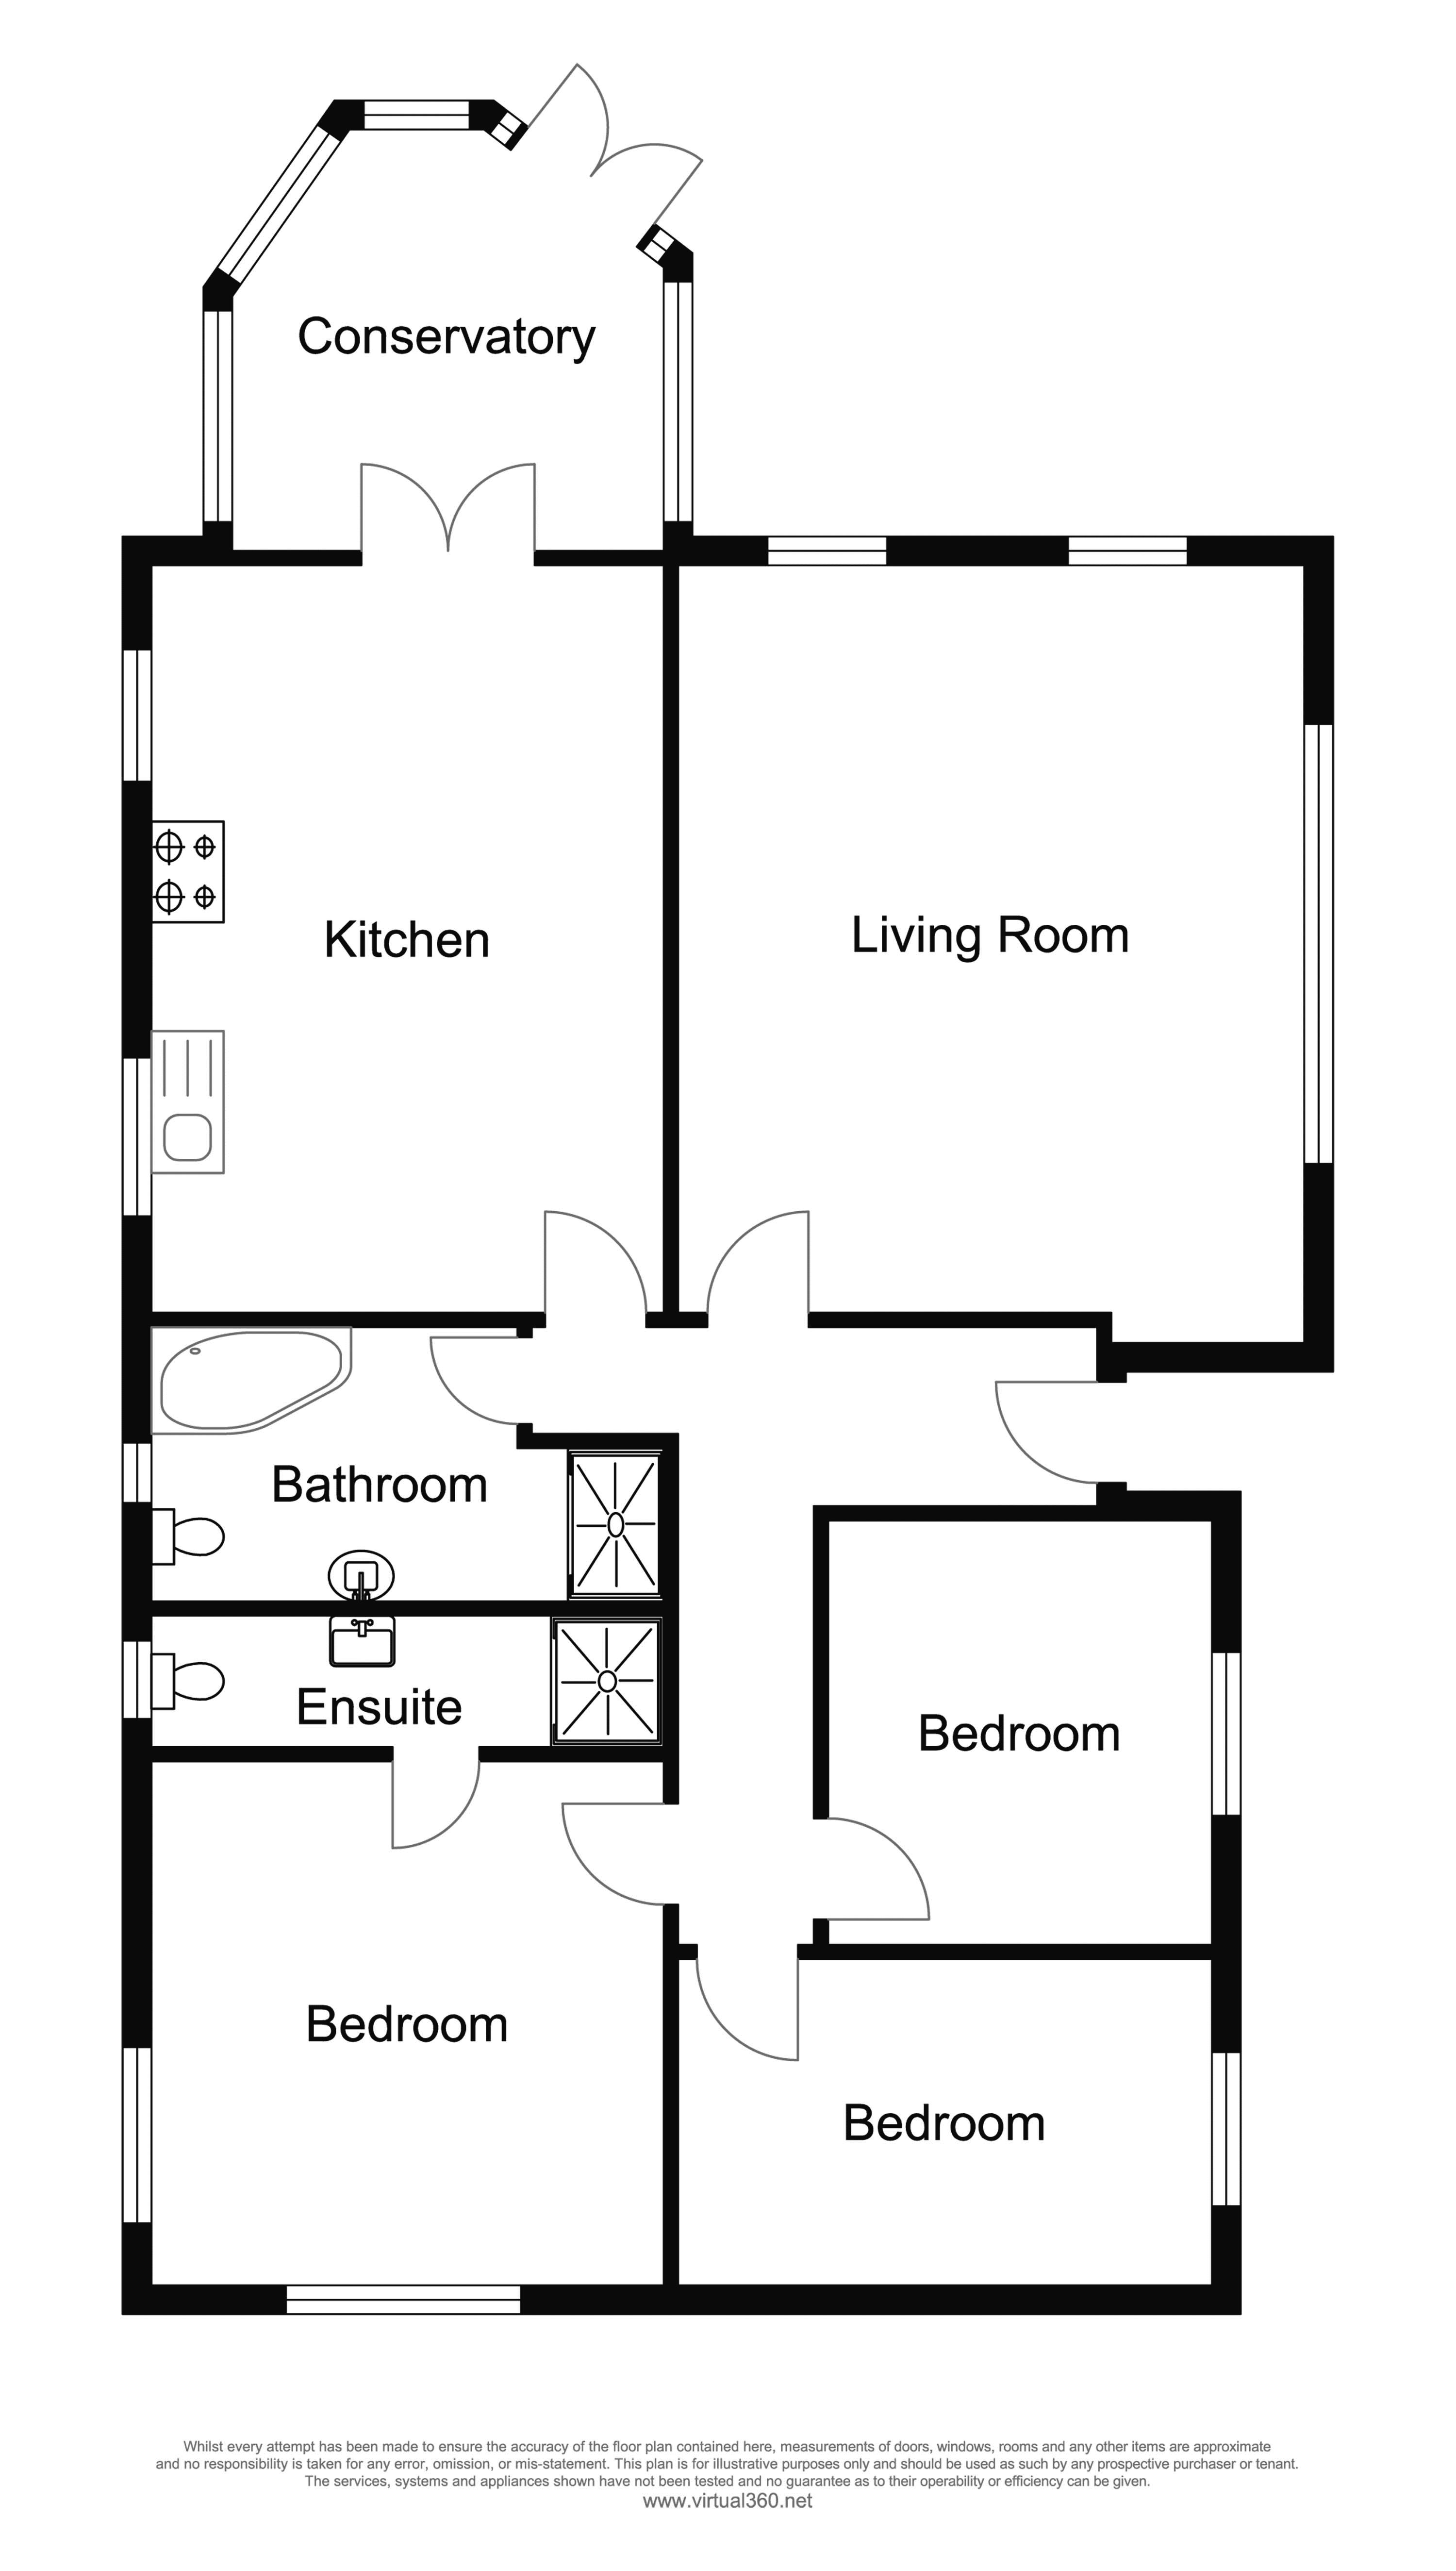 South Valley Drive, Colne floor plan